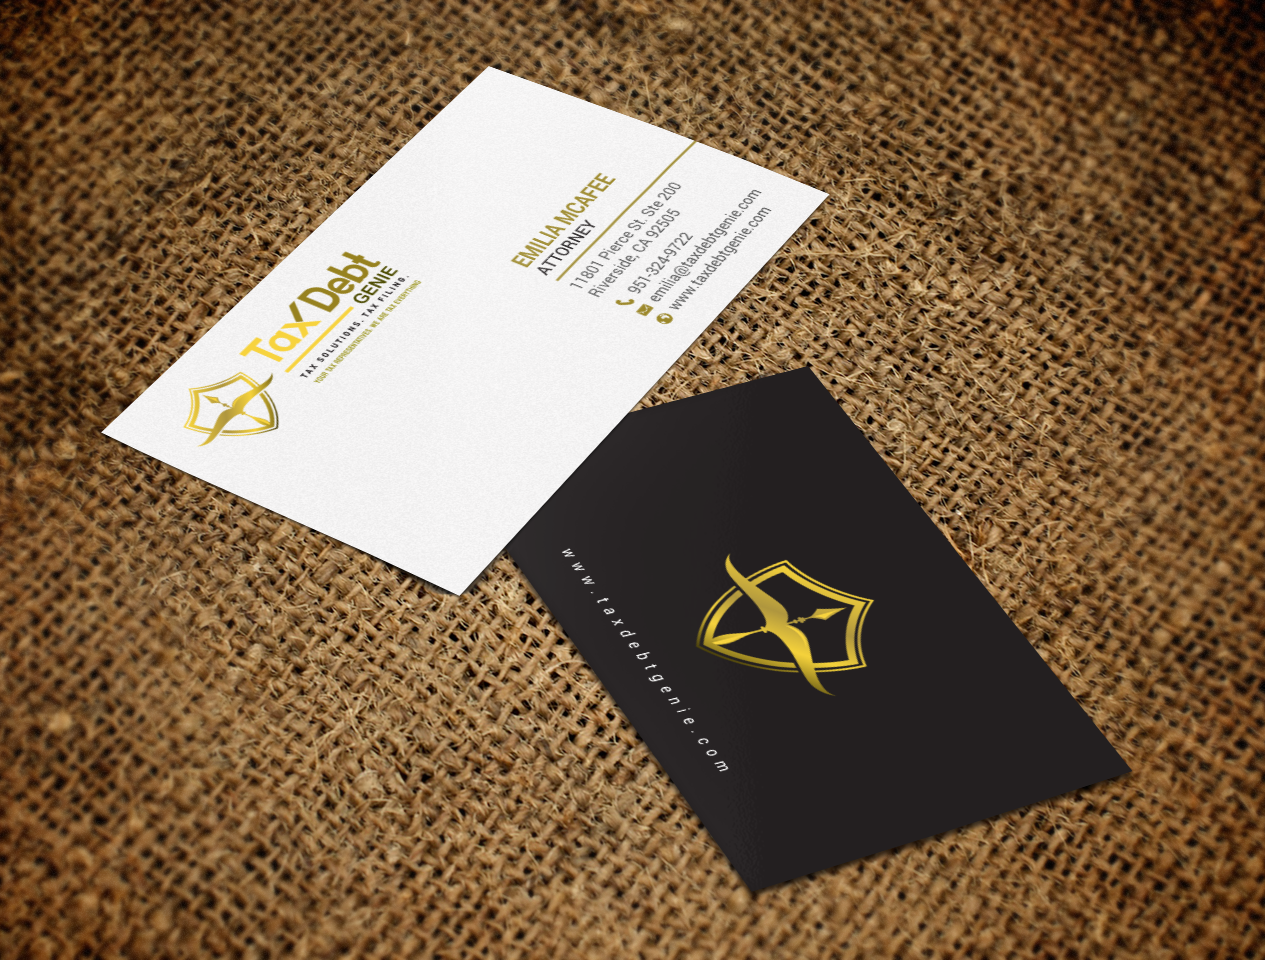 Upmarket elegant business card design for a company by chandrayaan business card design by chandrayaaneative for this project design 18403284 reheart Gallery